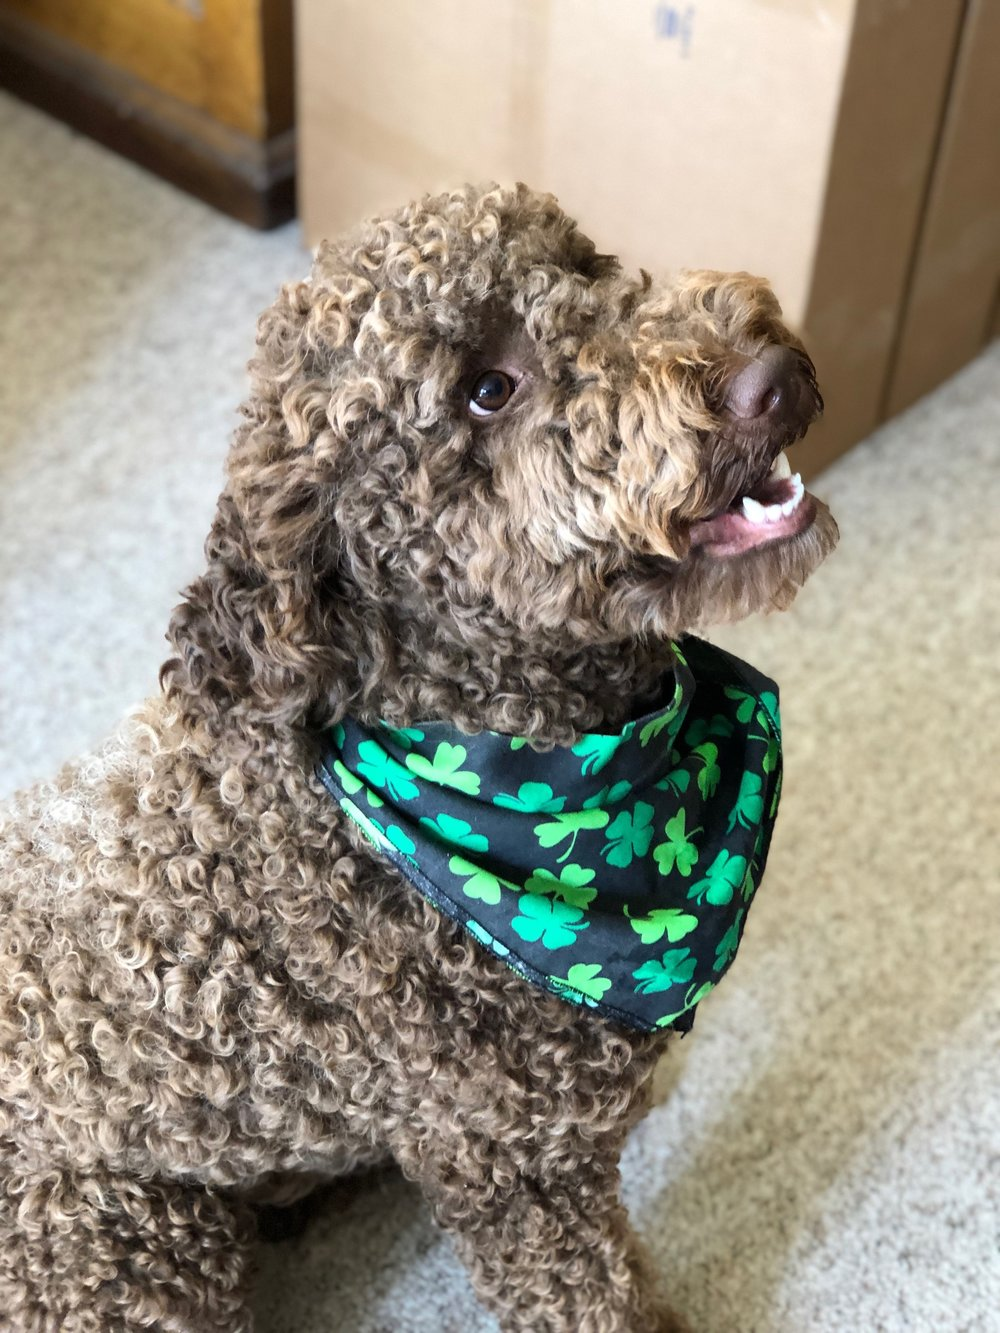 Green Water, Therapy, & Prizes! - Bark! Ellie Speaks